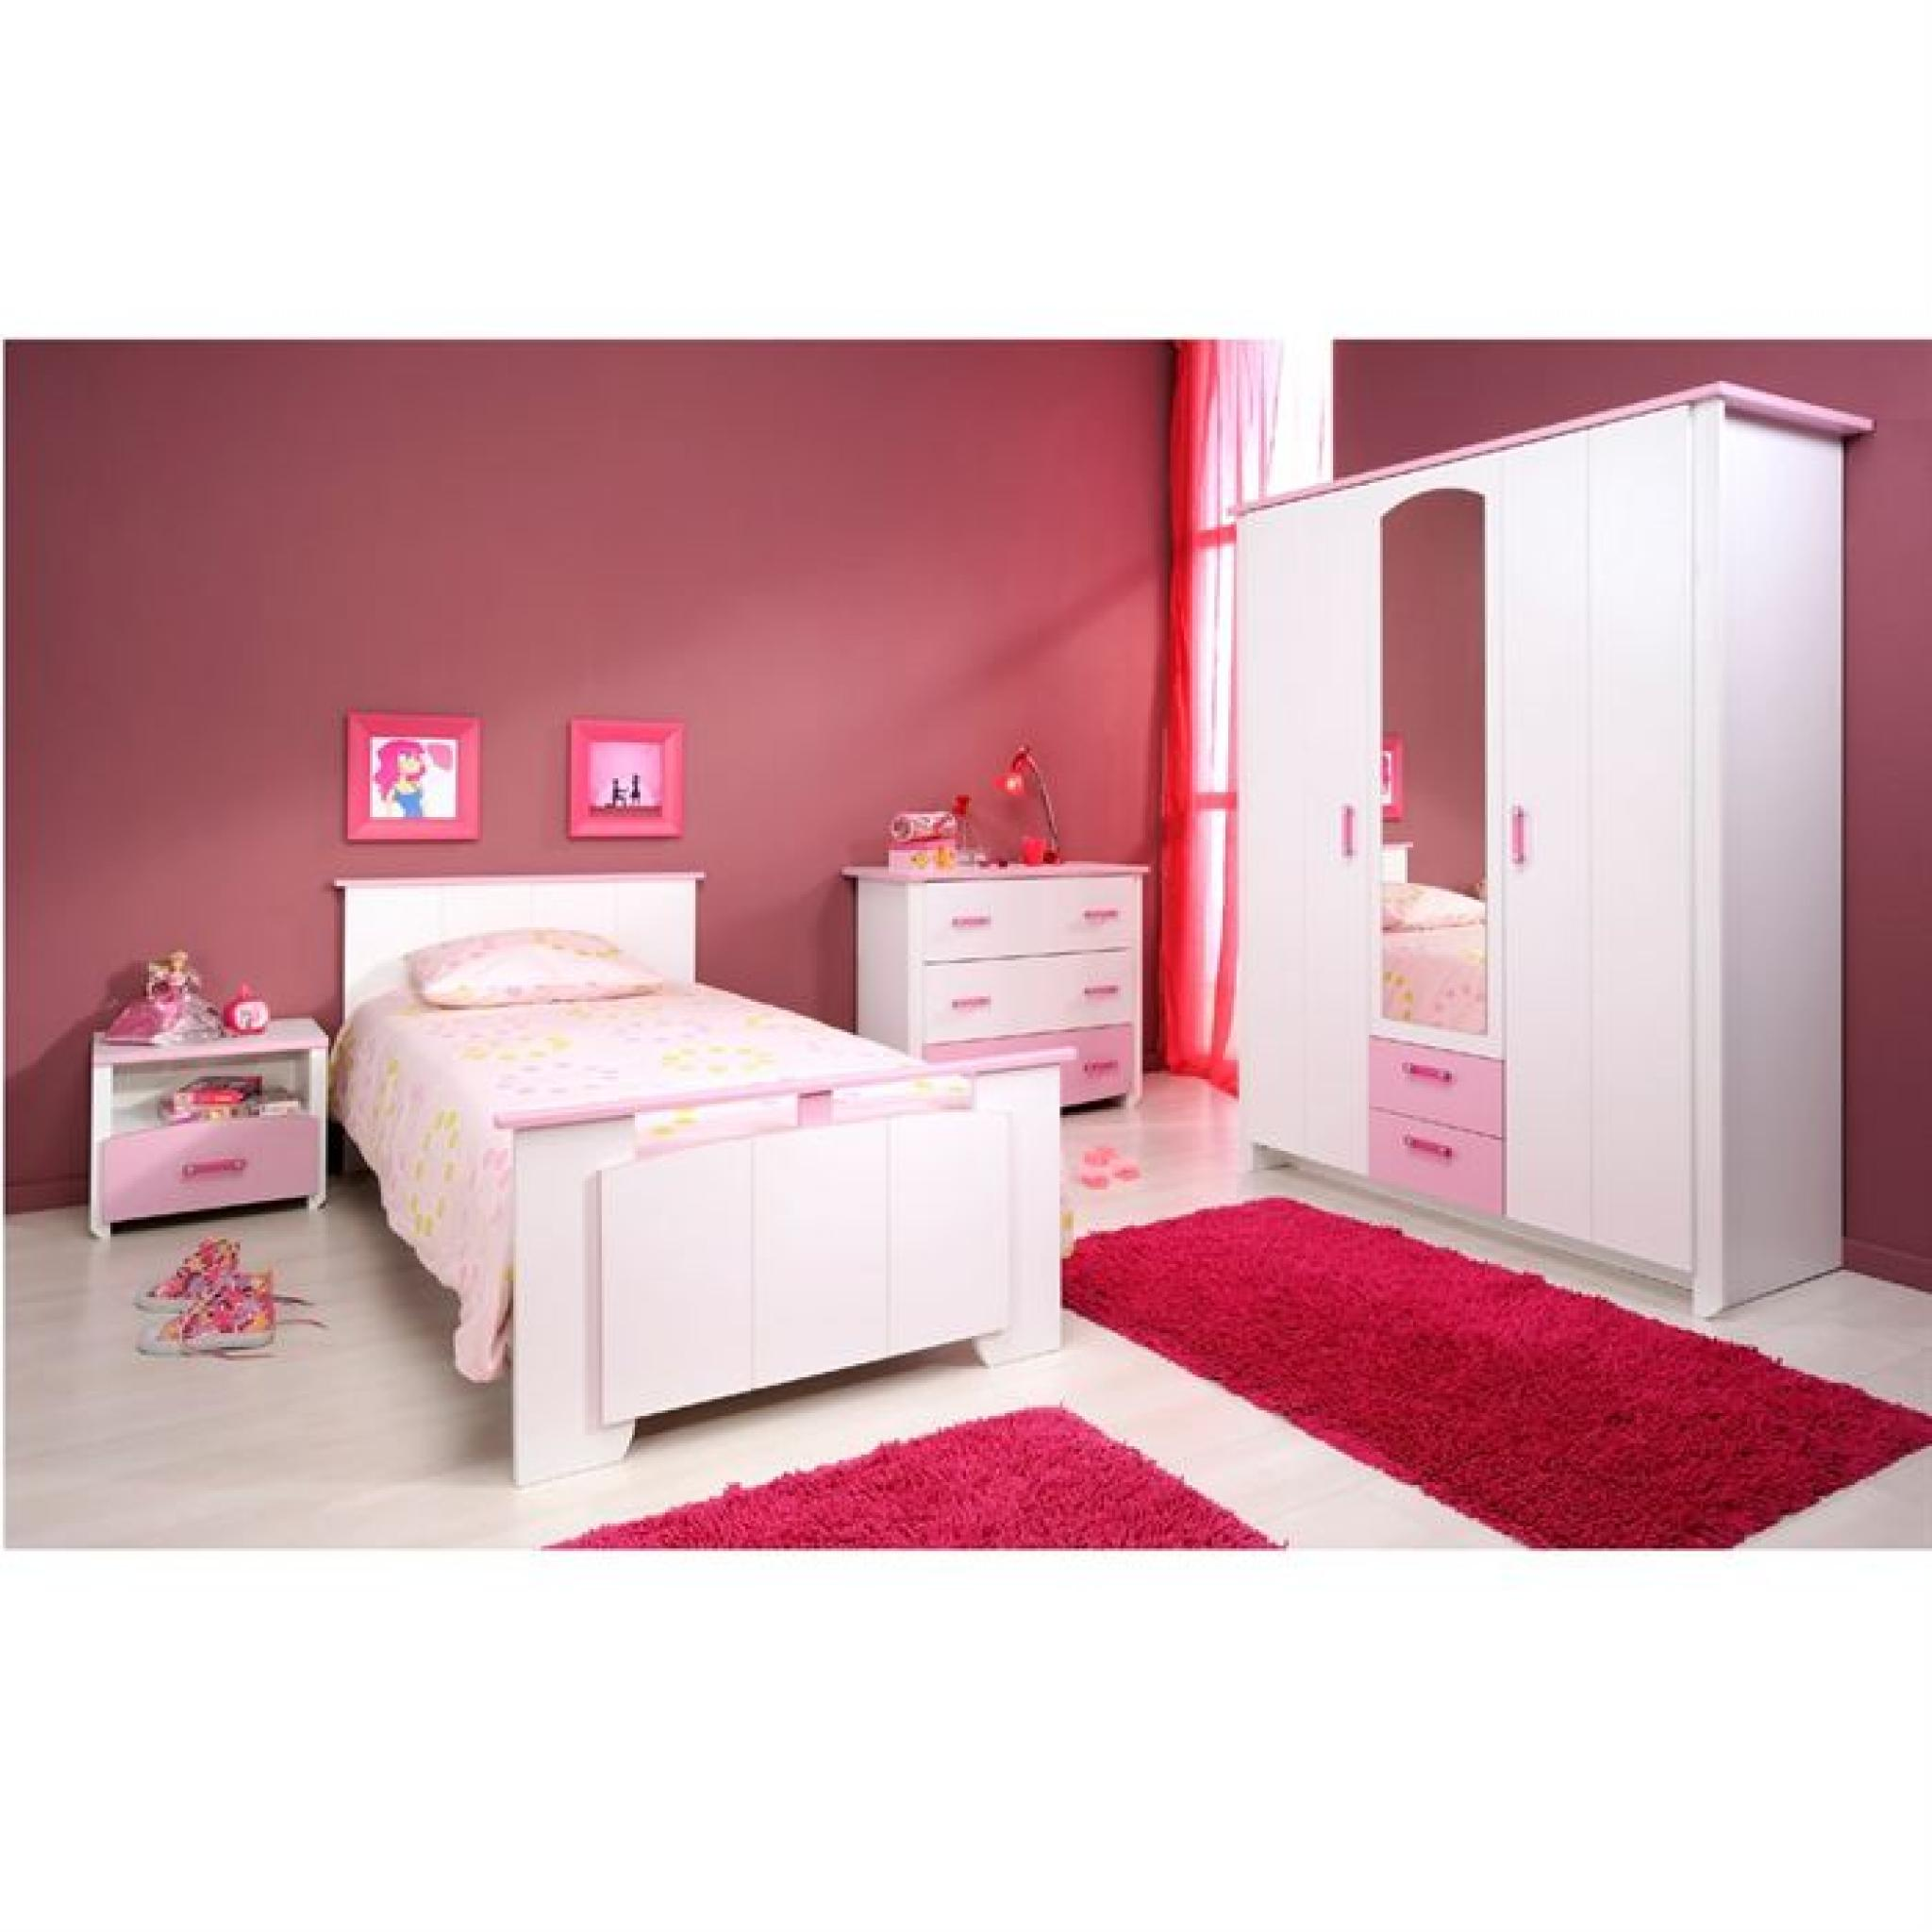 Commode Chambre Adulte Elegance Chambre Complète Adulte Avec Commode Achat